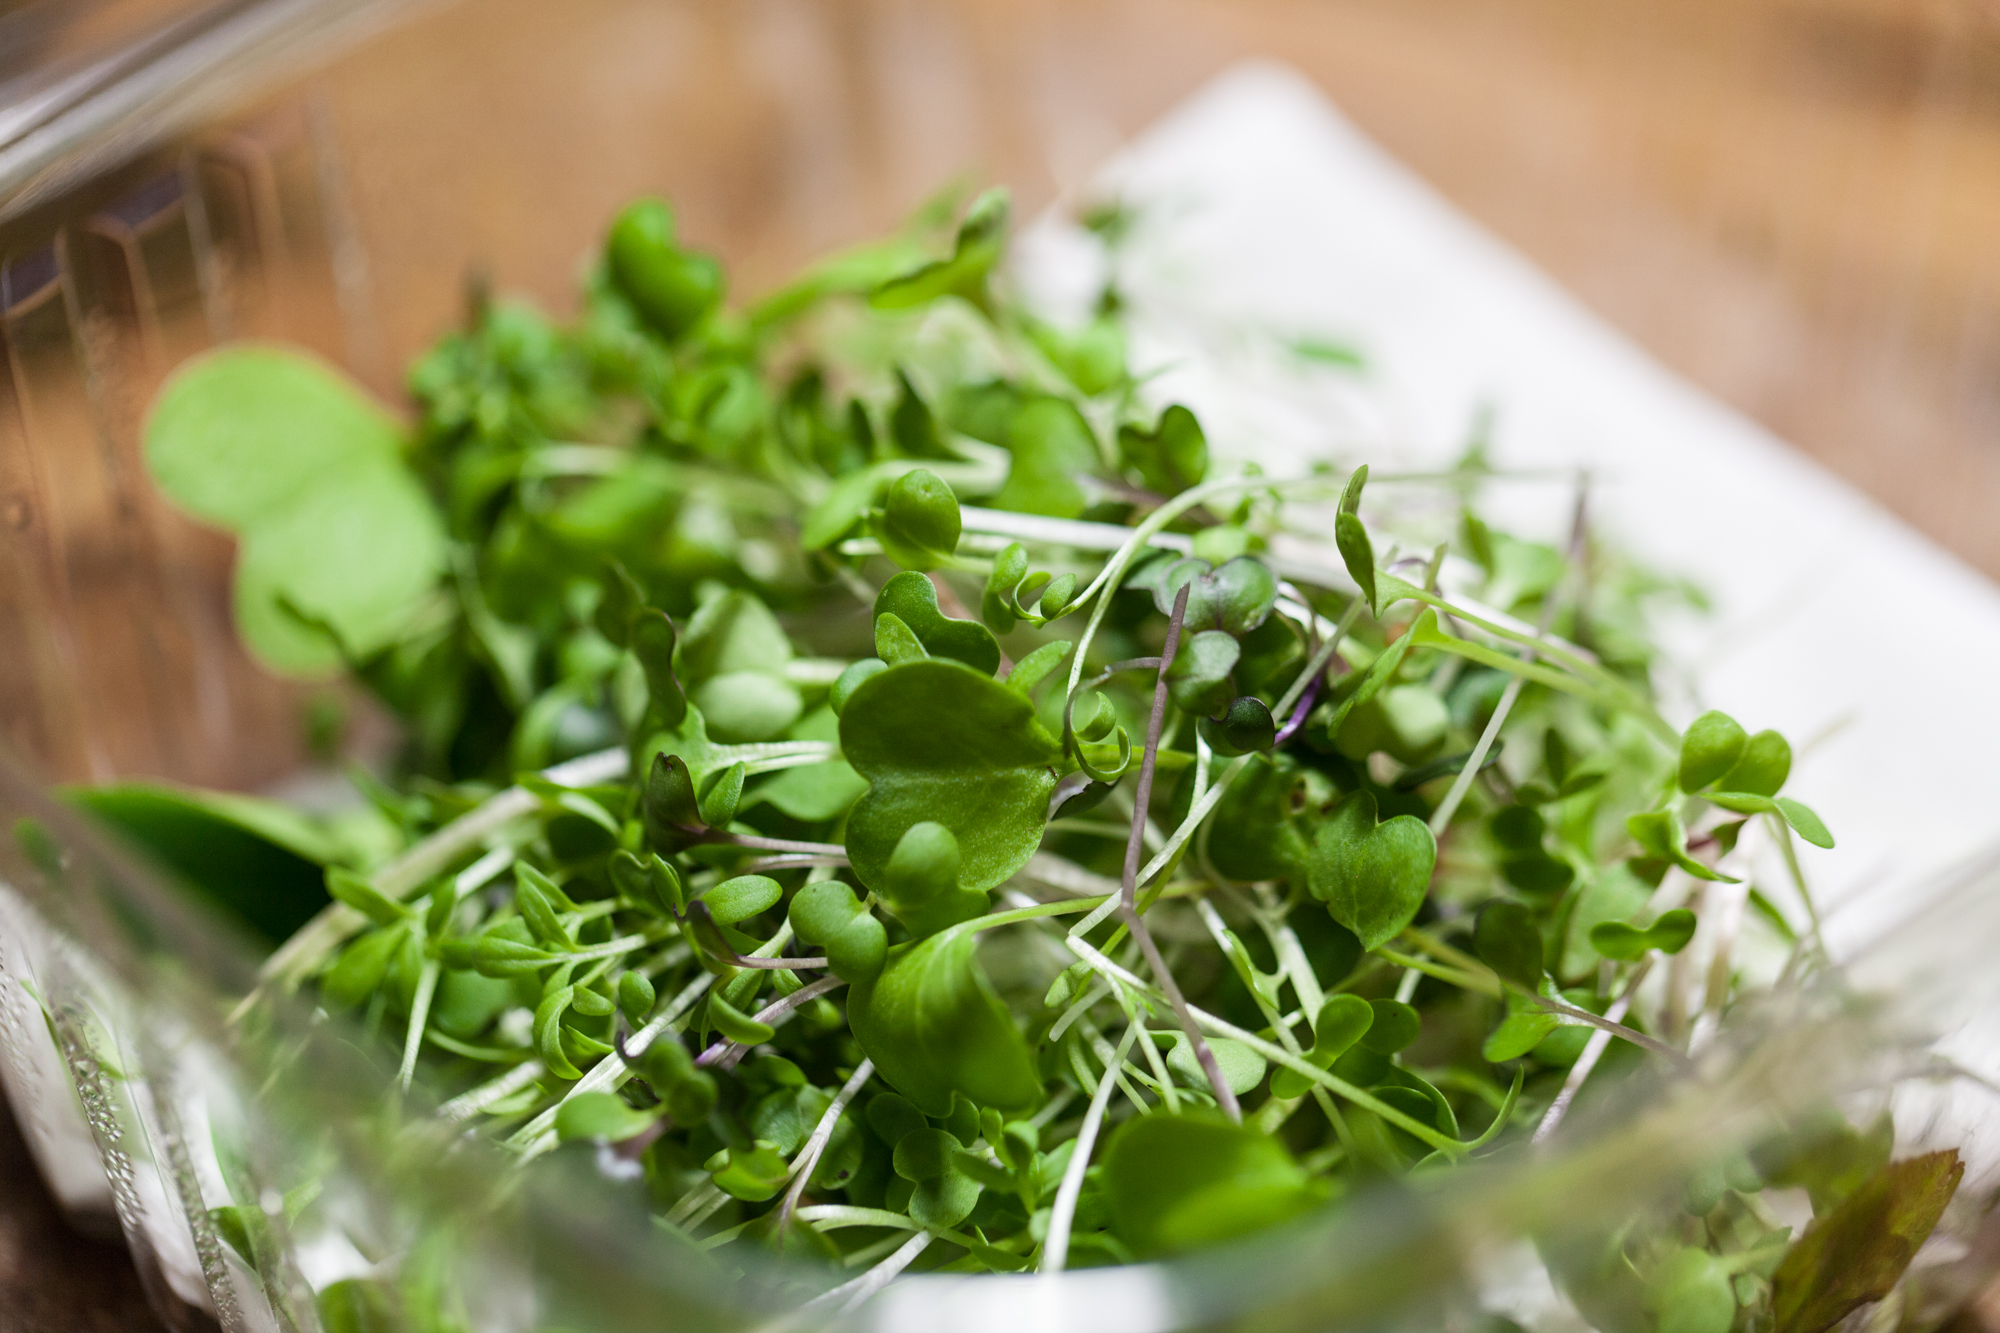 An example of one of my weekly harvests. All microgreens here were grown in my closet garden! Photo:Photo: @HomesteadBrooklyn